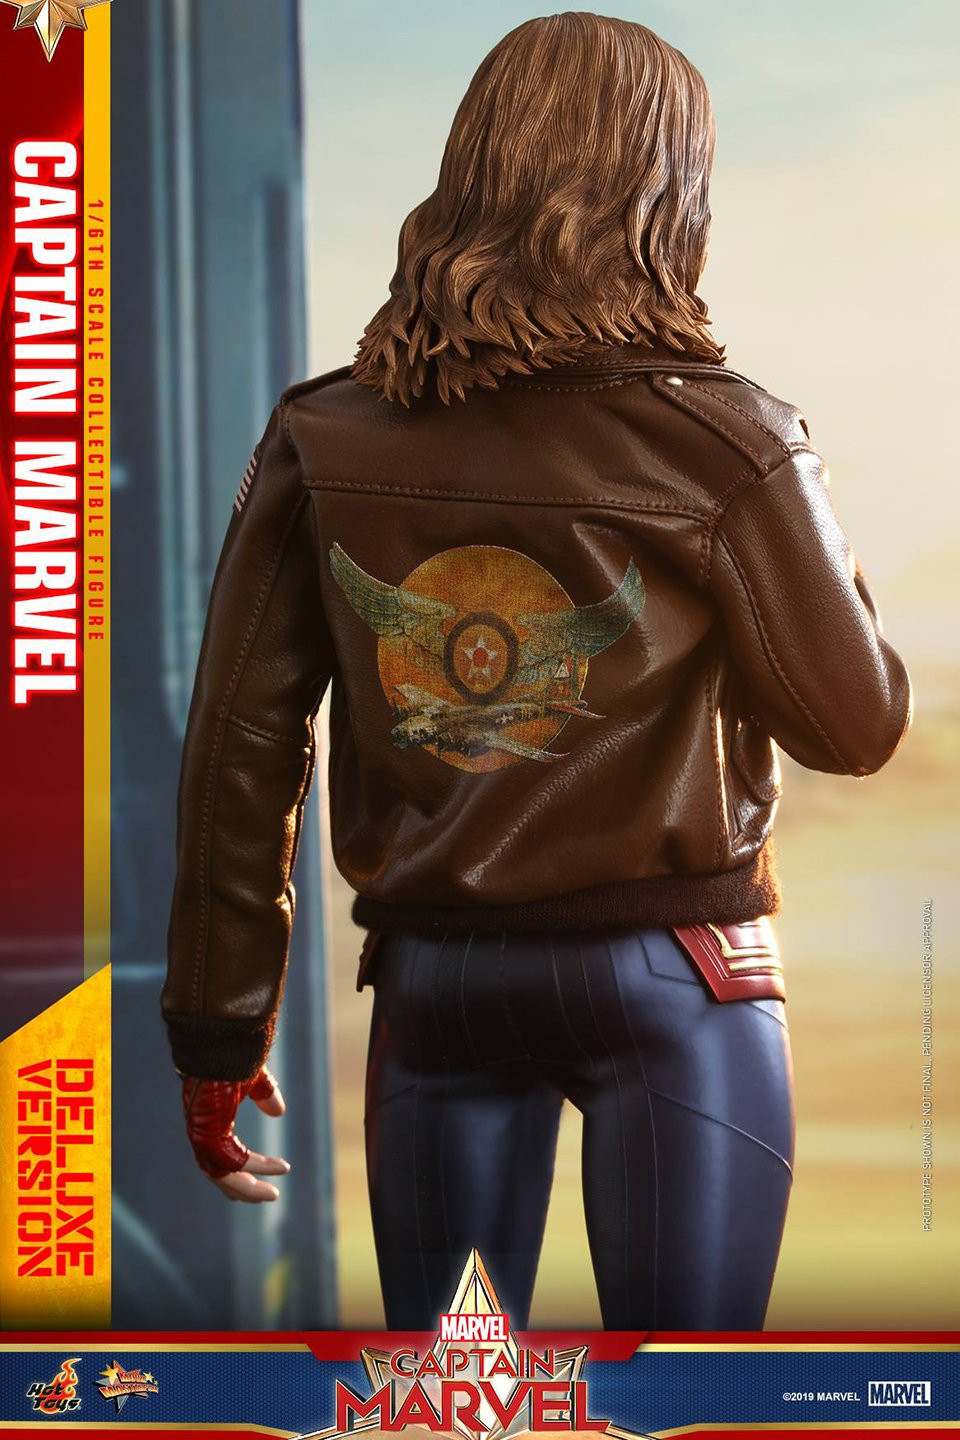 Check Out Hot Toys Action Figure Of Brie Larson As